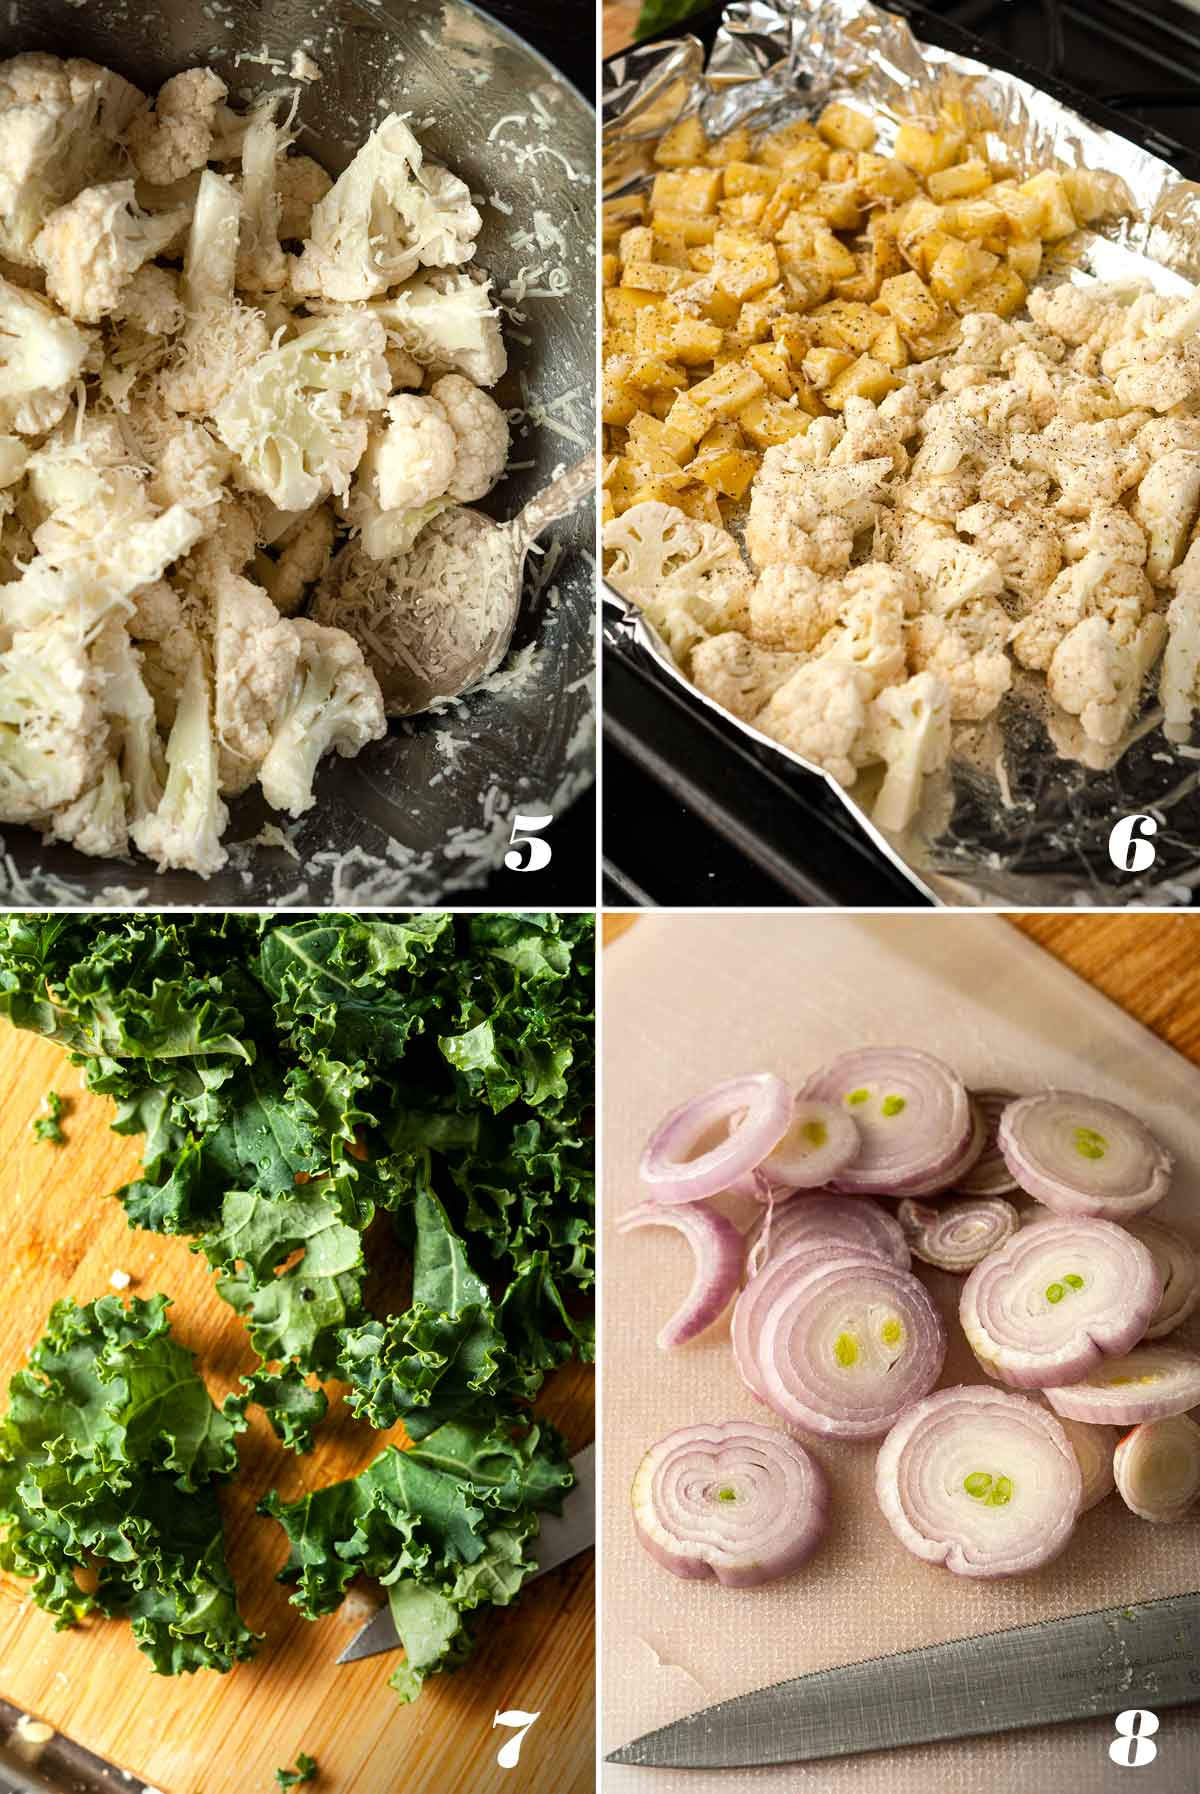 A collage of 4 numbered images showing how to prepare ingredients for Cauliflower and Kale Potato Hash.